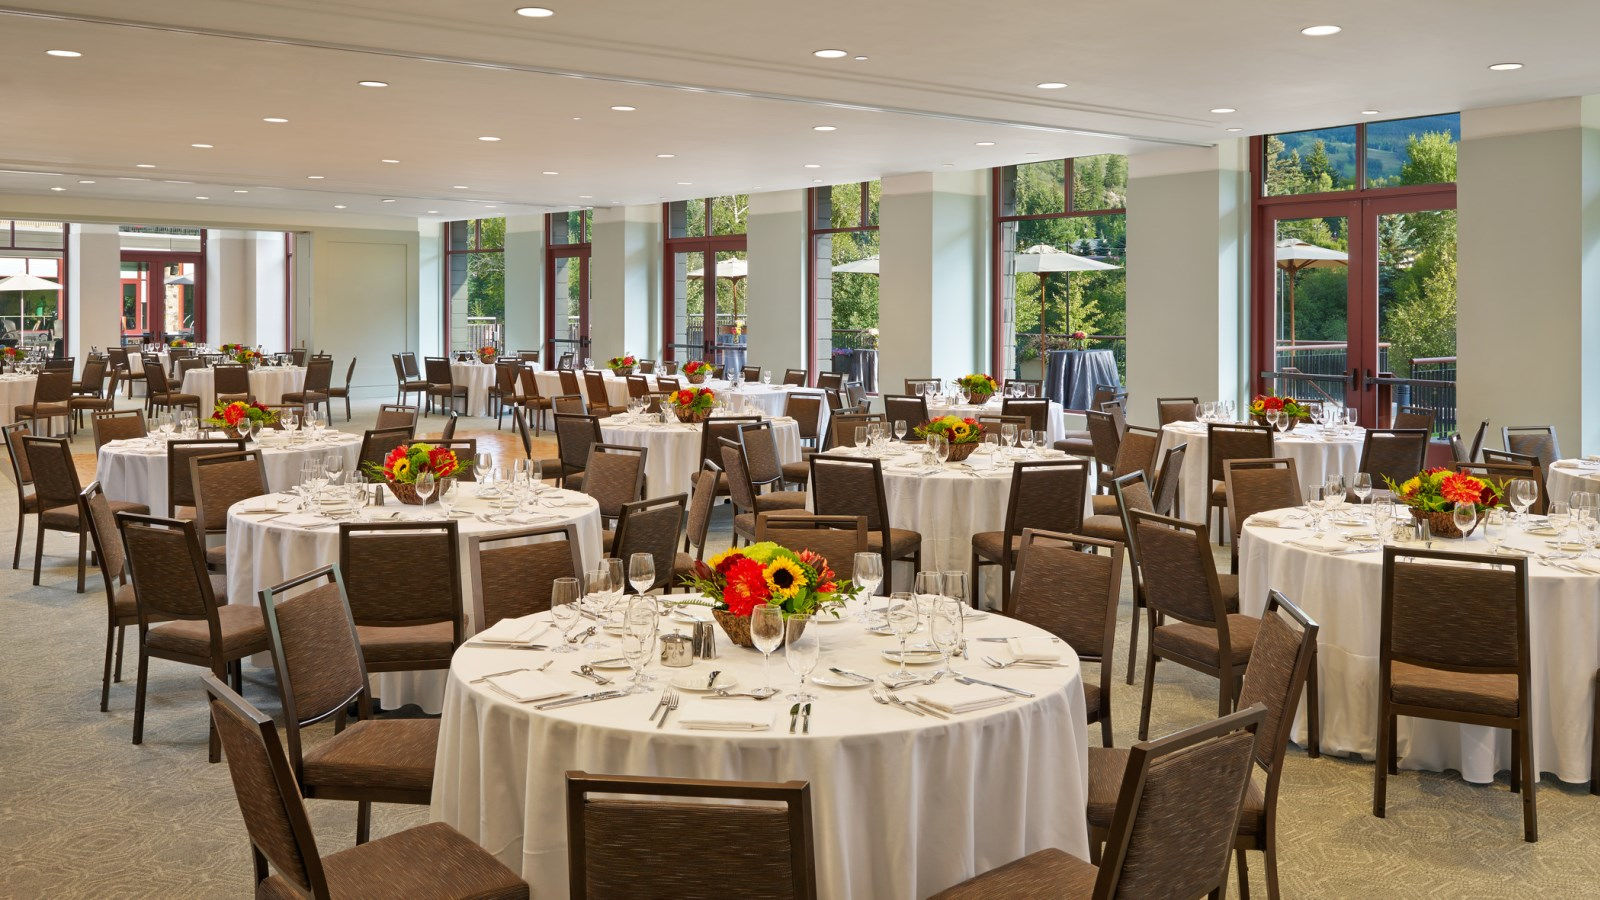 The Westin Riverfront Resort & Spa Avon, Vail Valley- Weddings